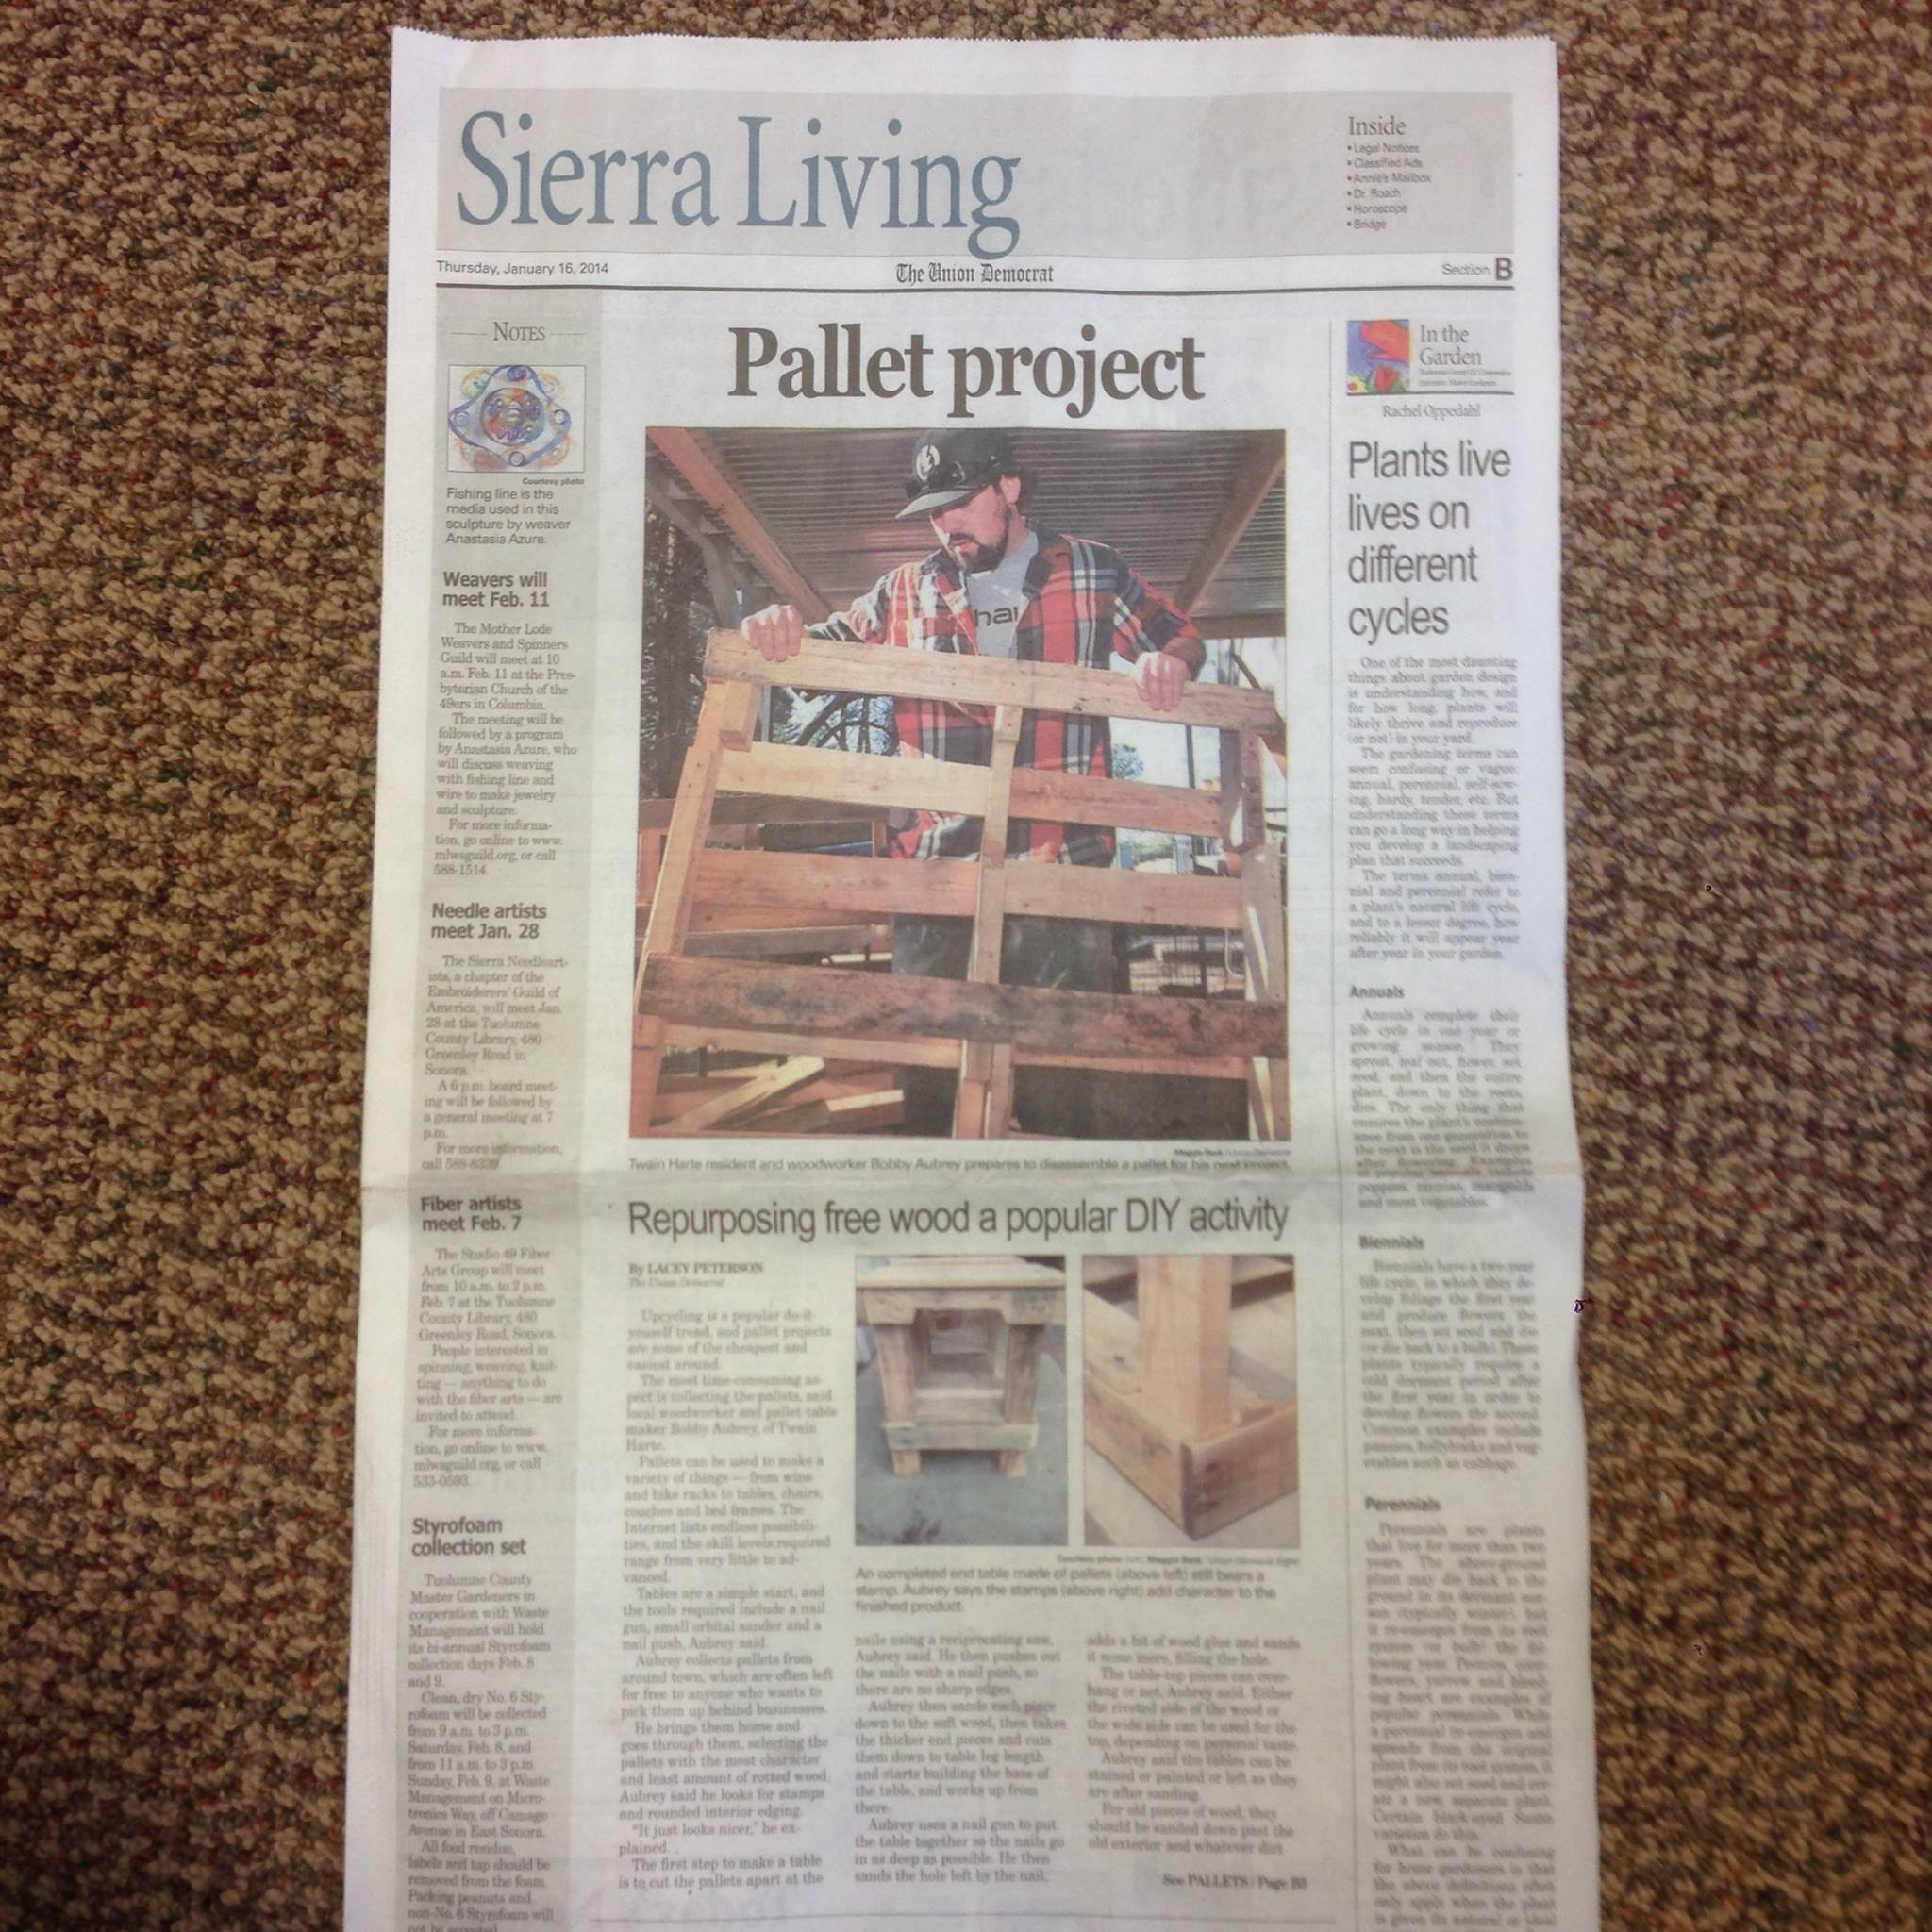 Pallet Project - After living in San Diego for a couple years, I moved home and began doing odd jobs to make money until I figured out what I wanted to do. I came across a couple DIY pallet projects on facebook and started collecting pallets from around town and taking them apart to make furniture.